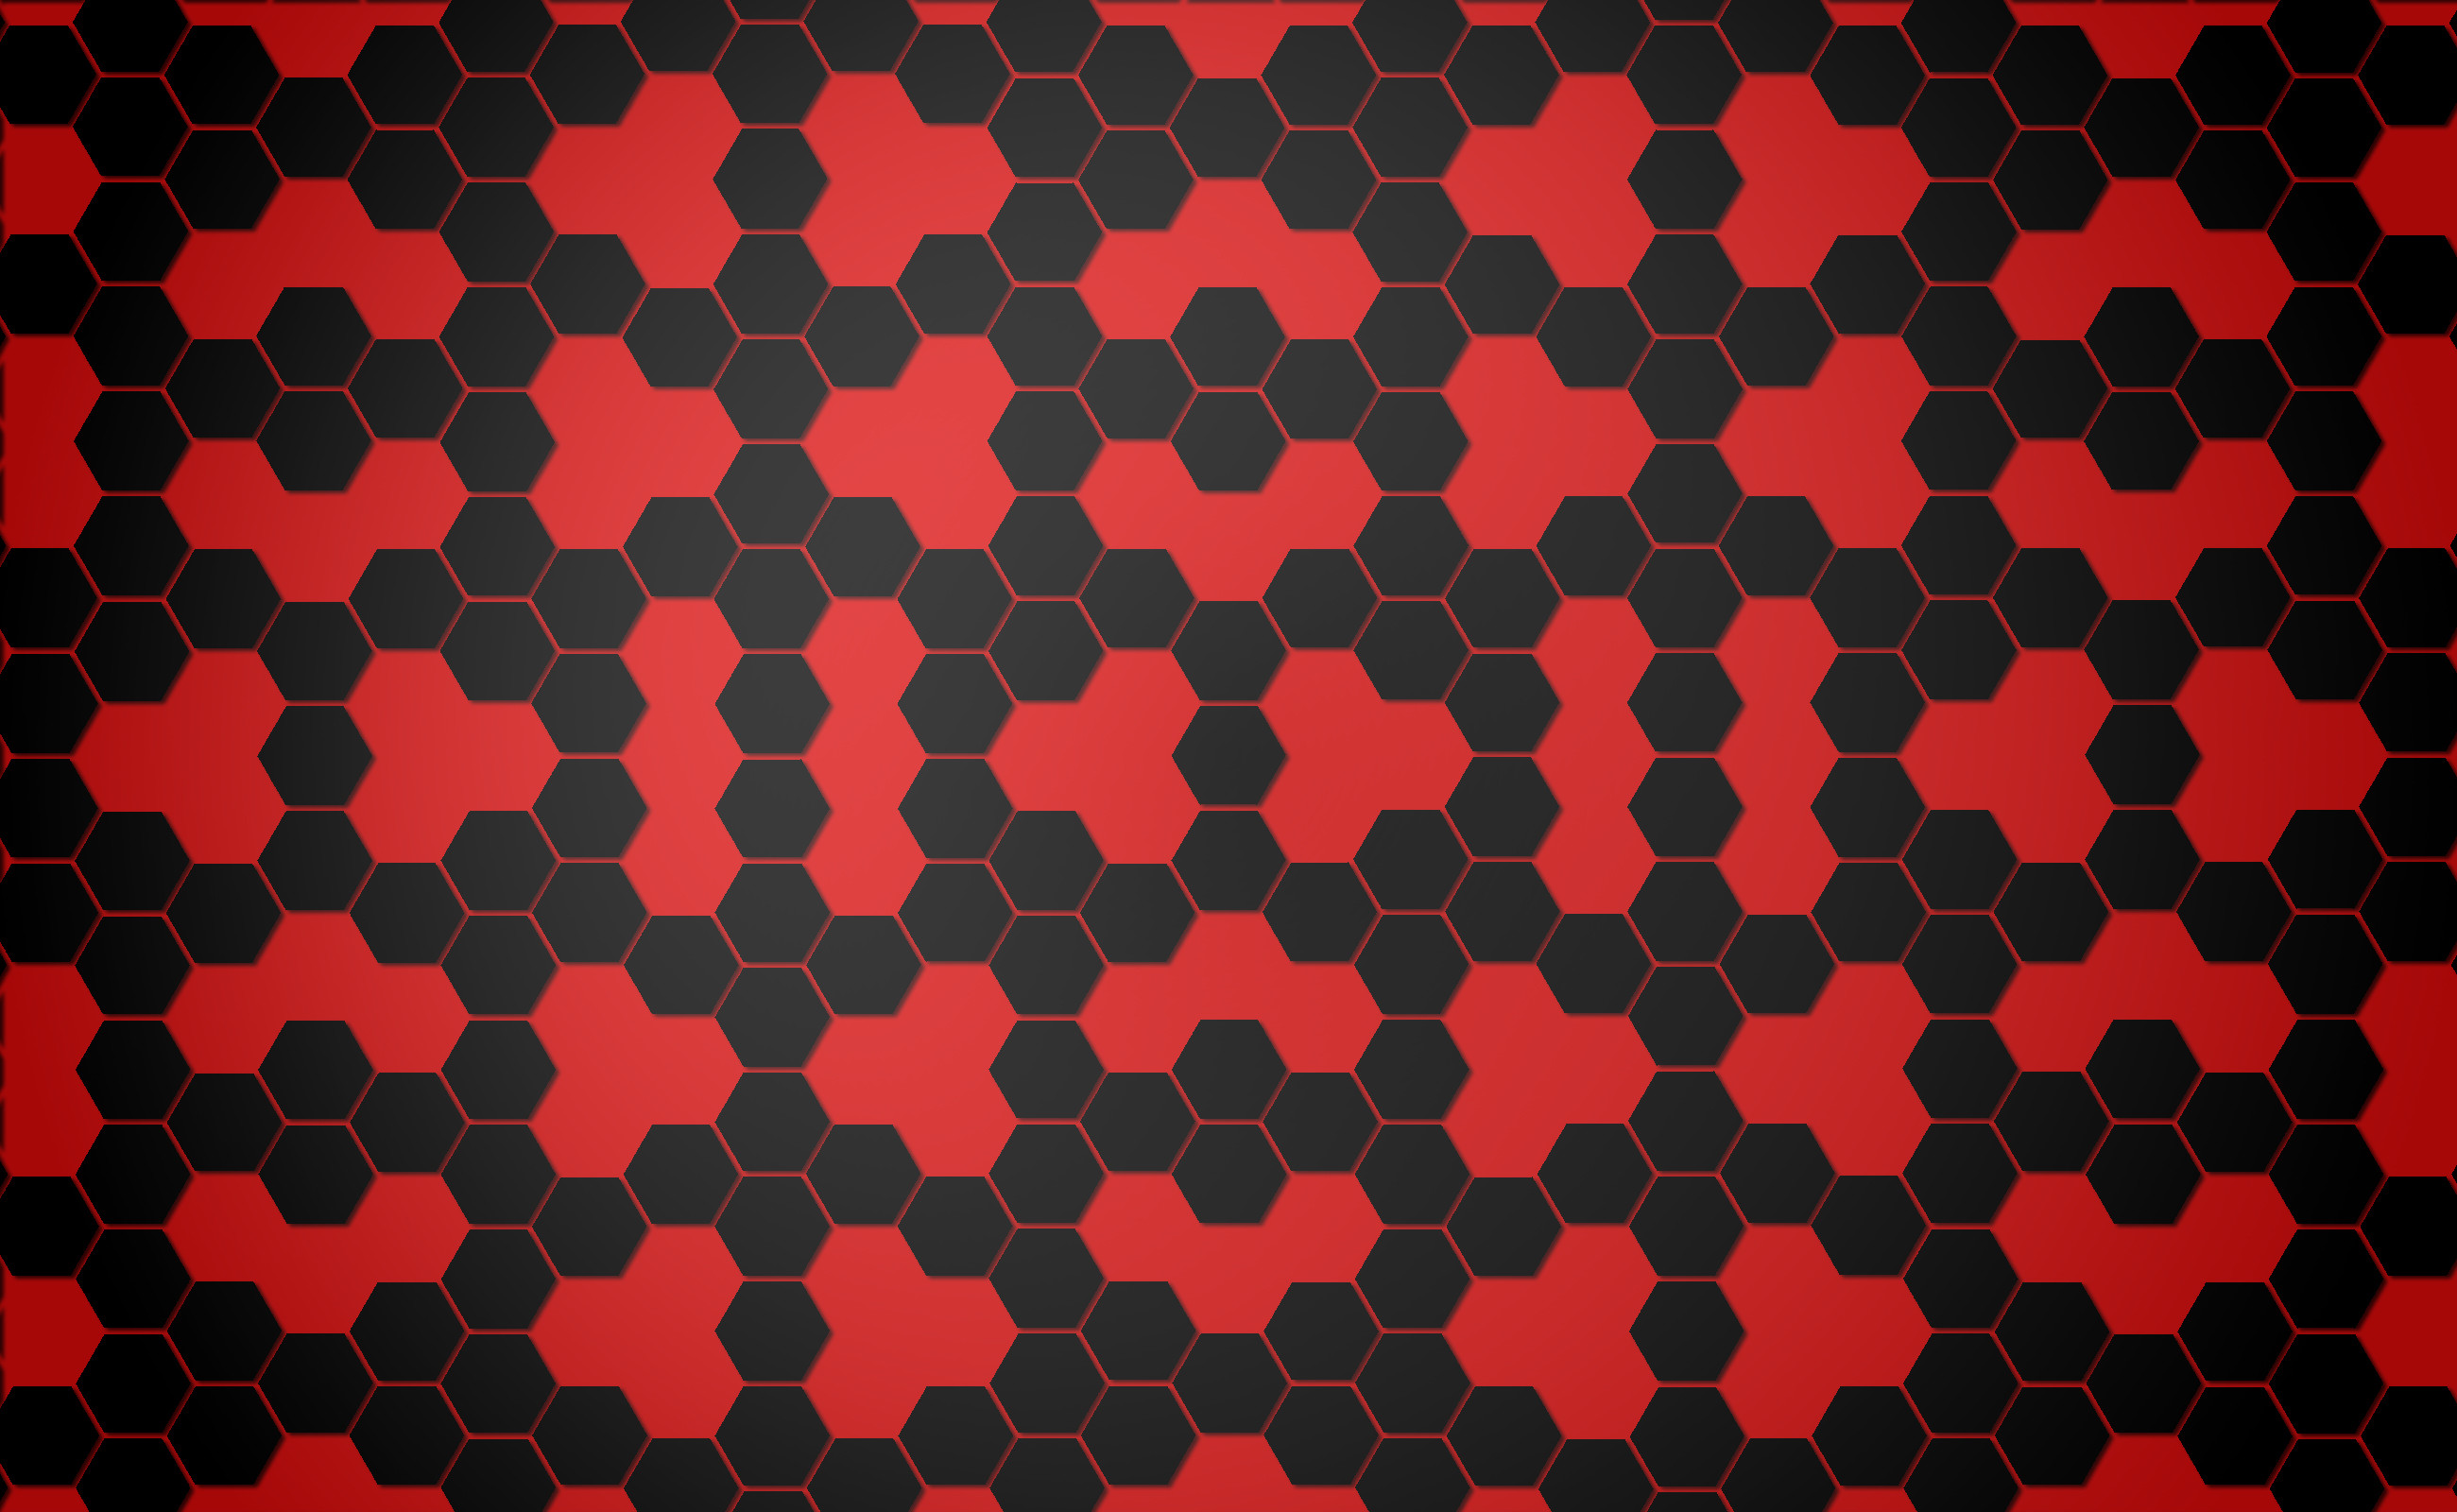 Black And Red Background Wallpaper 2 Wide Wallpaper. Black And Red  Background Wallpaper 2 Wide Wallpaper